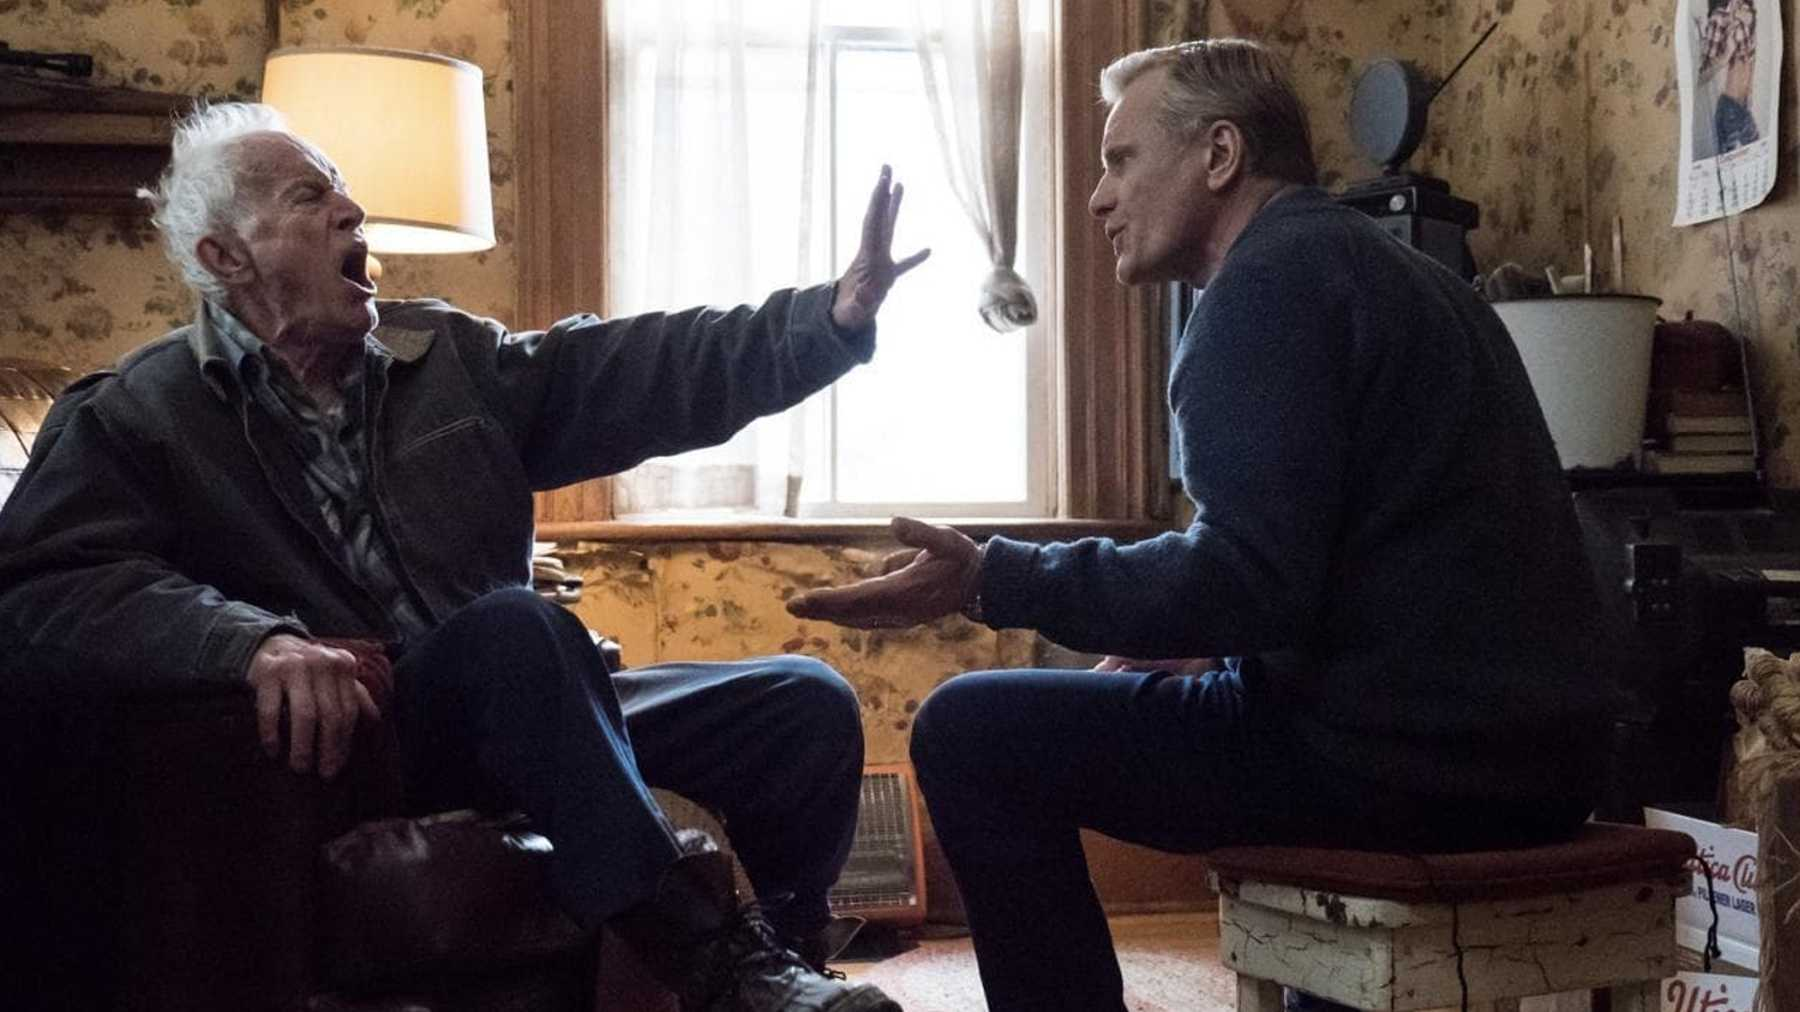 Viggo Mortensen's directorial debut Falling is as inscrutable as the man behind the lens – review